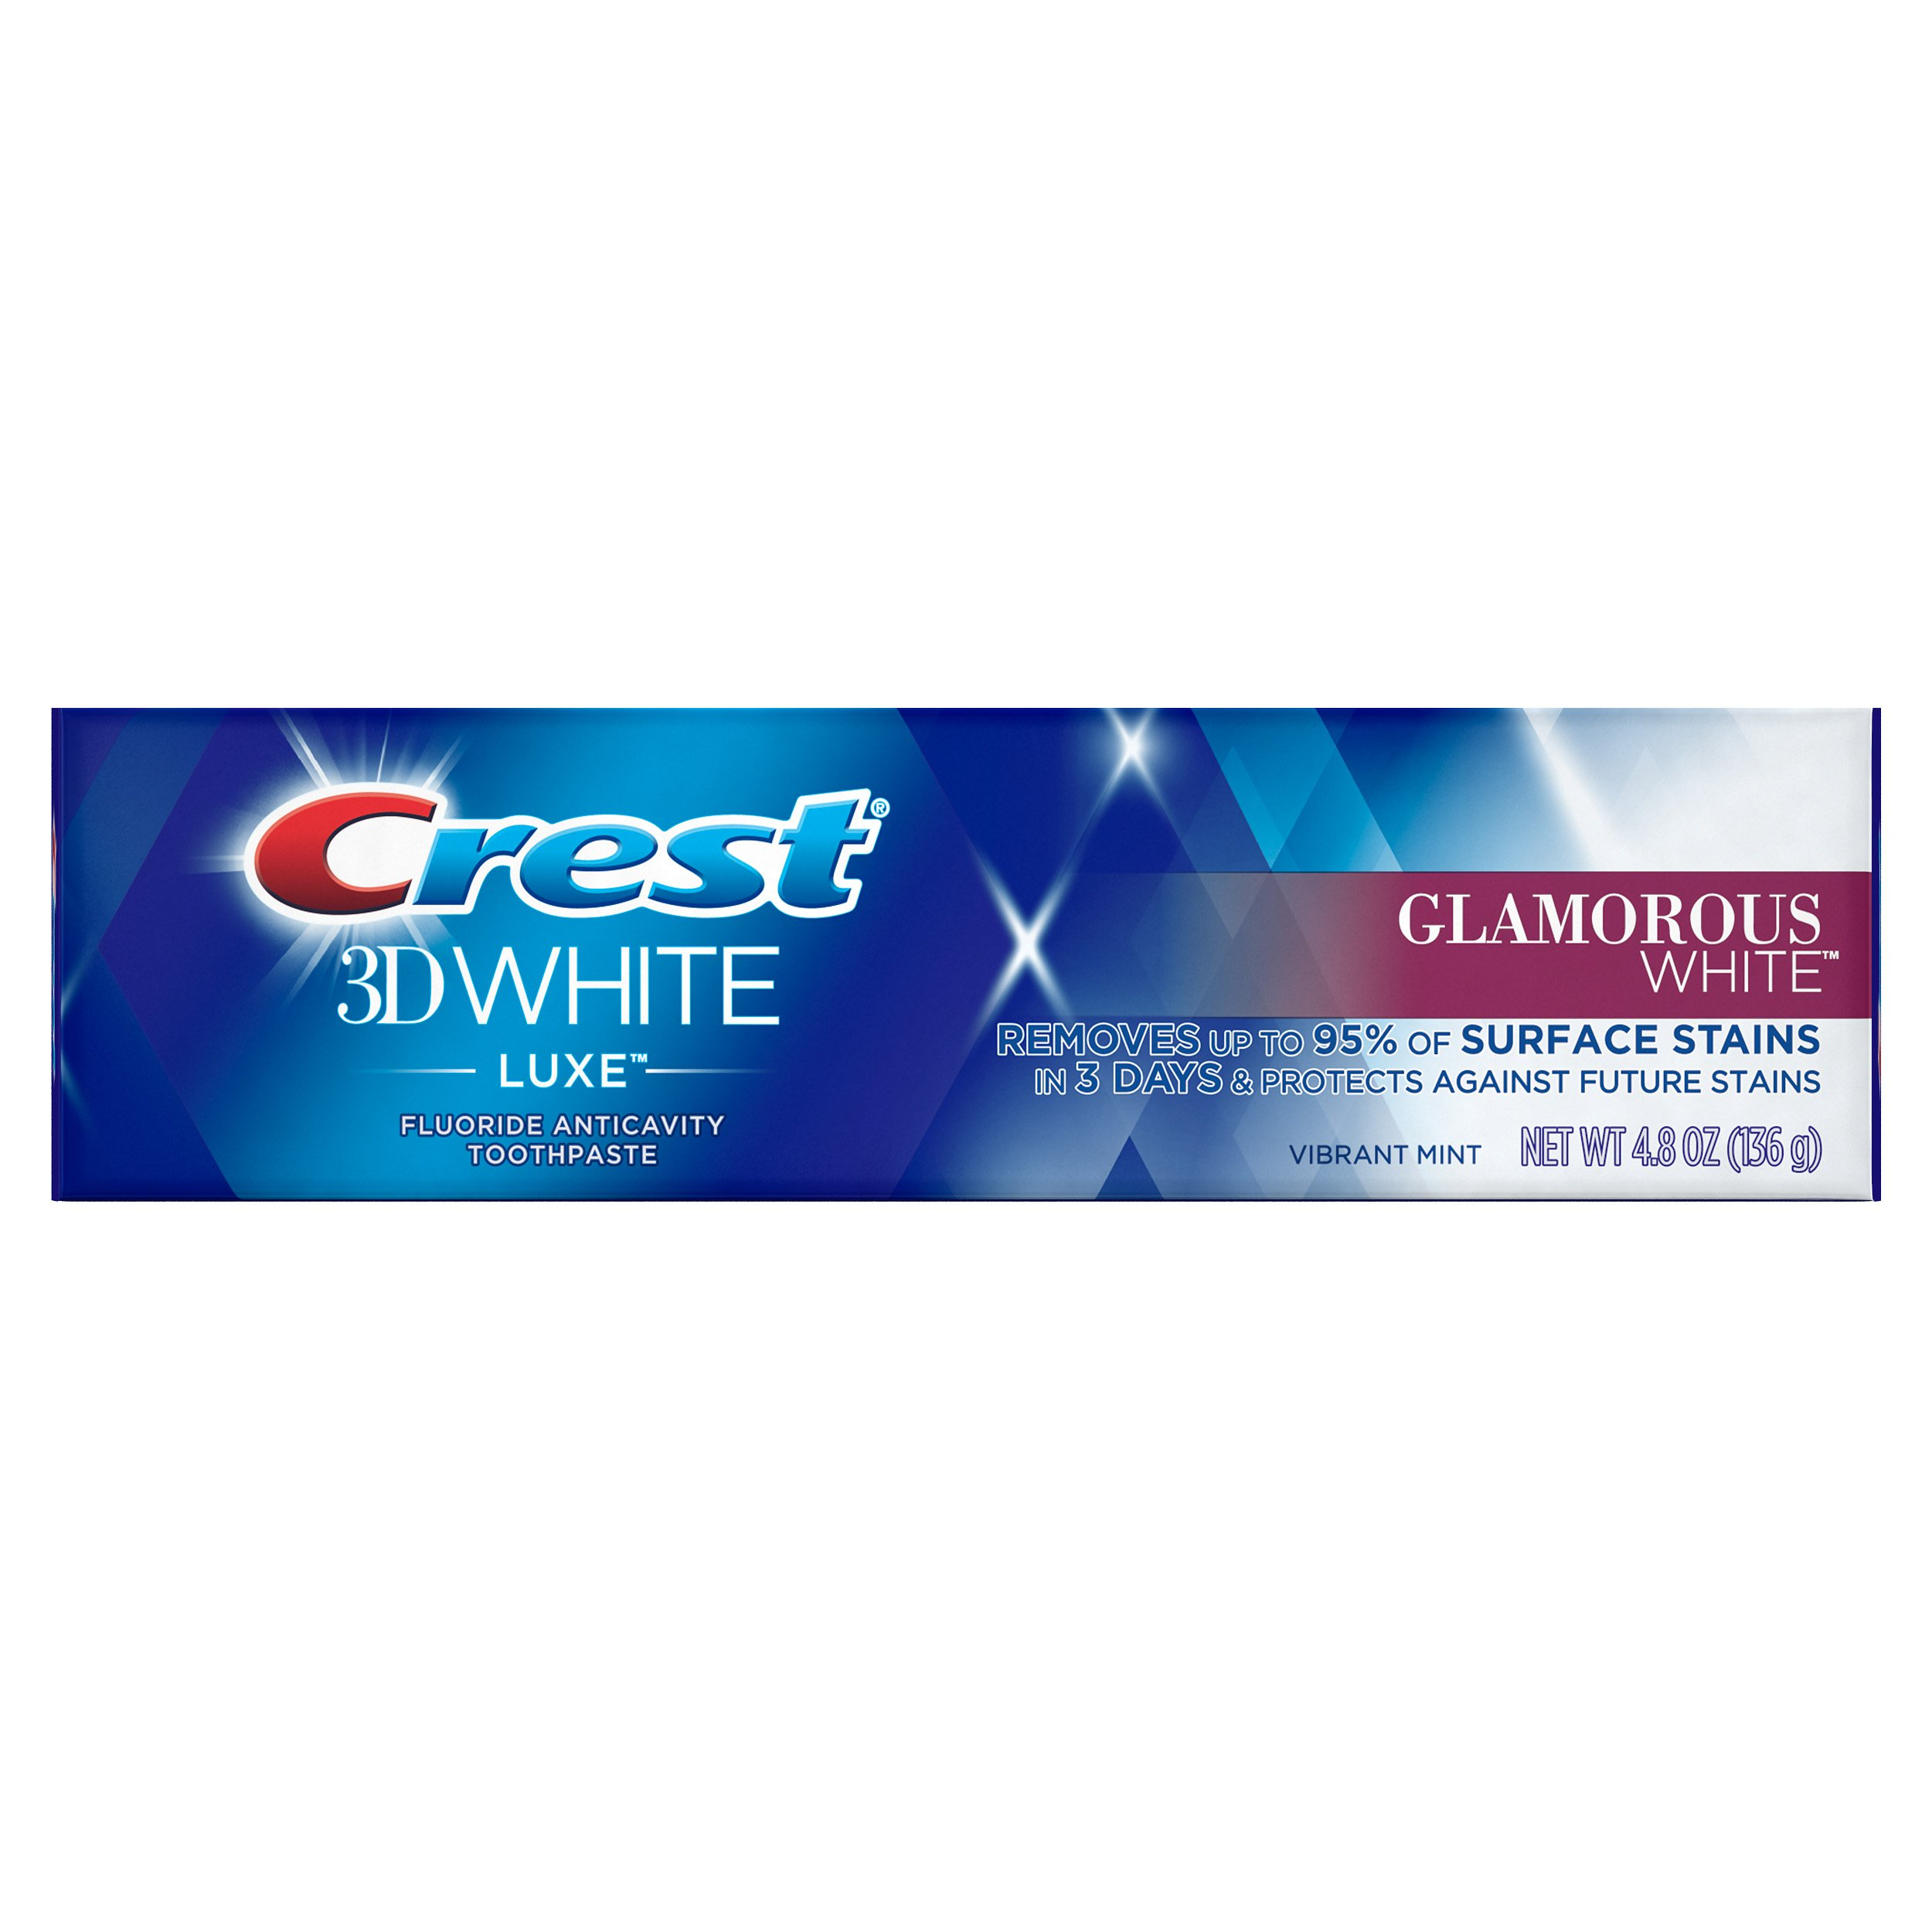 Crest 3D White Luxe Glamorous White Toothpaste, 4.8 Ounce (Pack of 24) by Crest